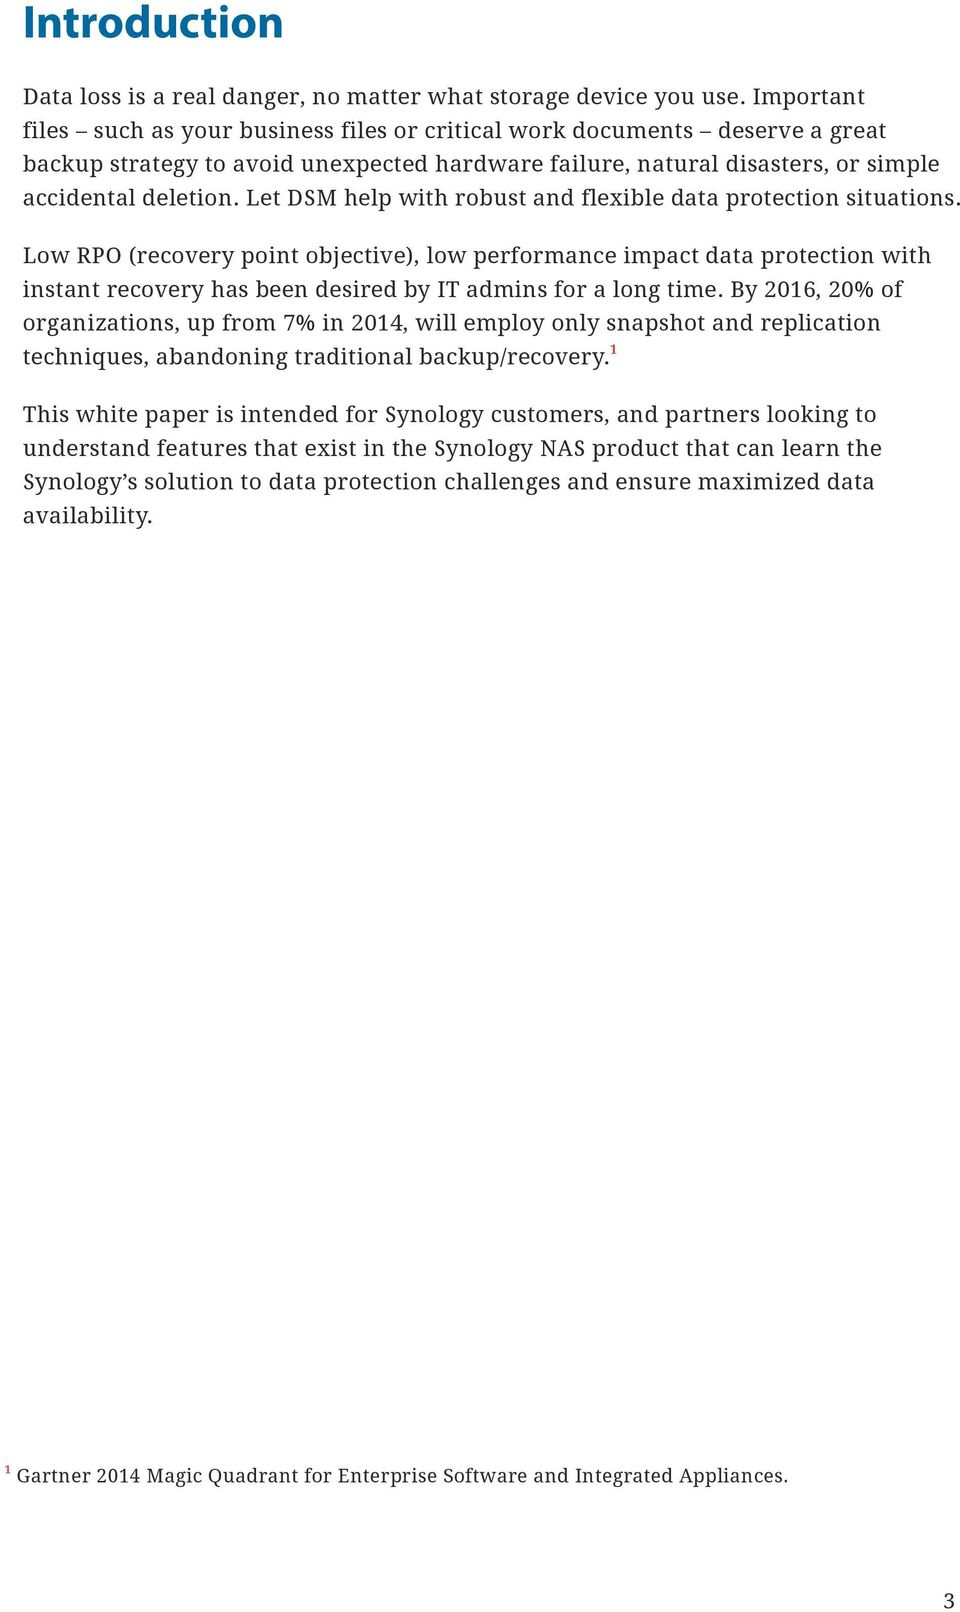 White Paper for Data Protection with Synology Snapshot